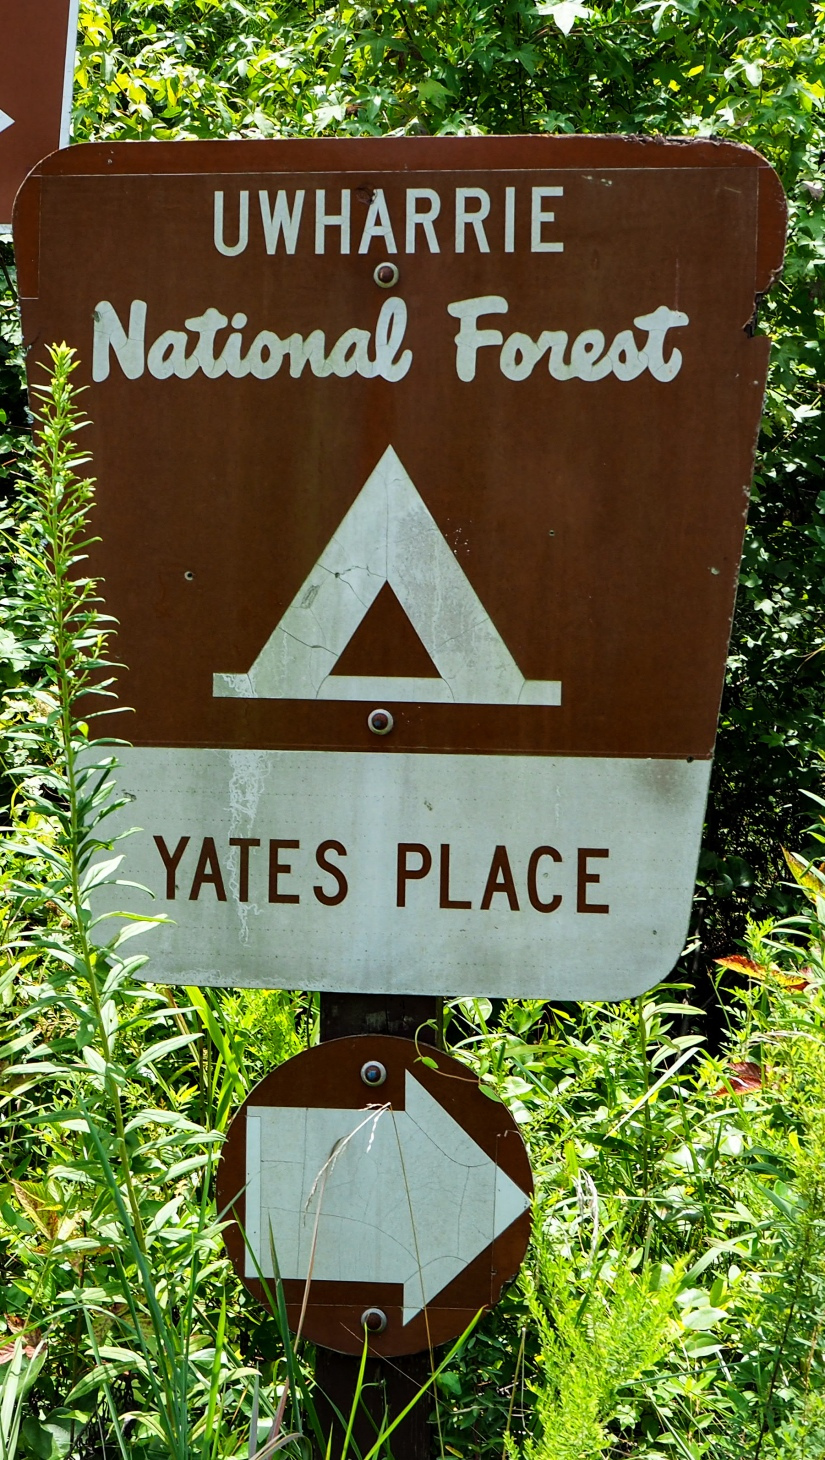 Mini review – Free Campsite Uwharrie National Forest Yates PlaceCampground